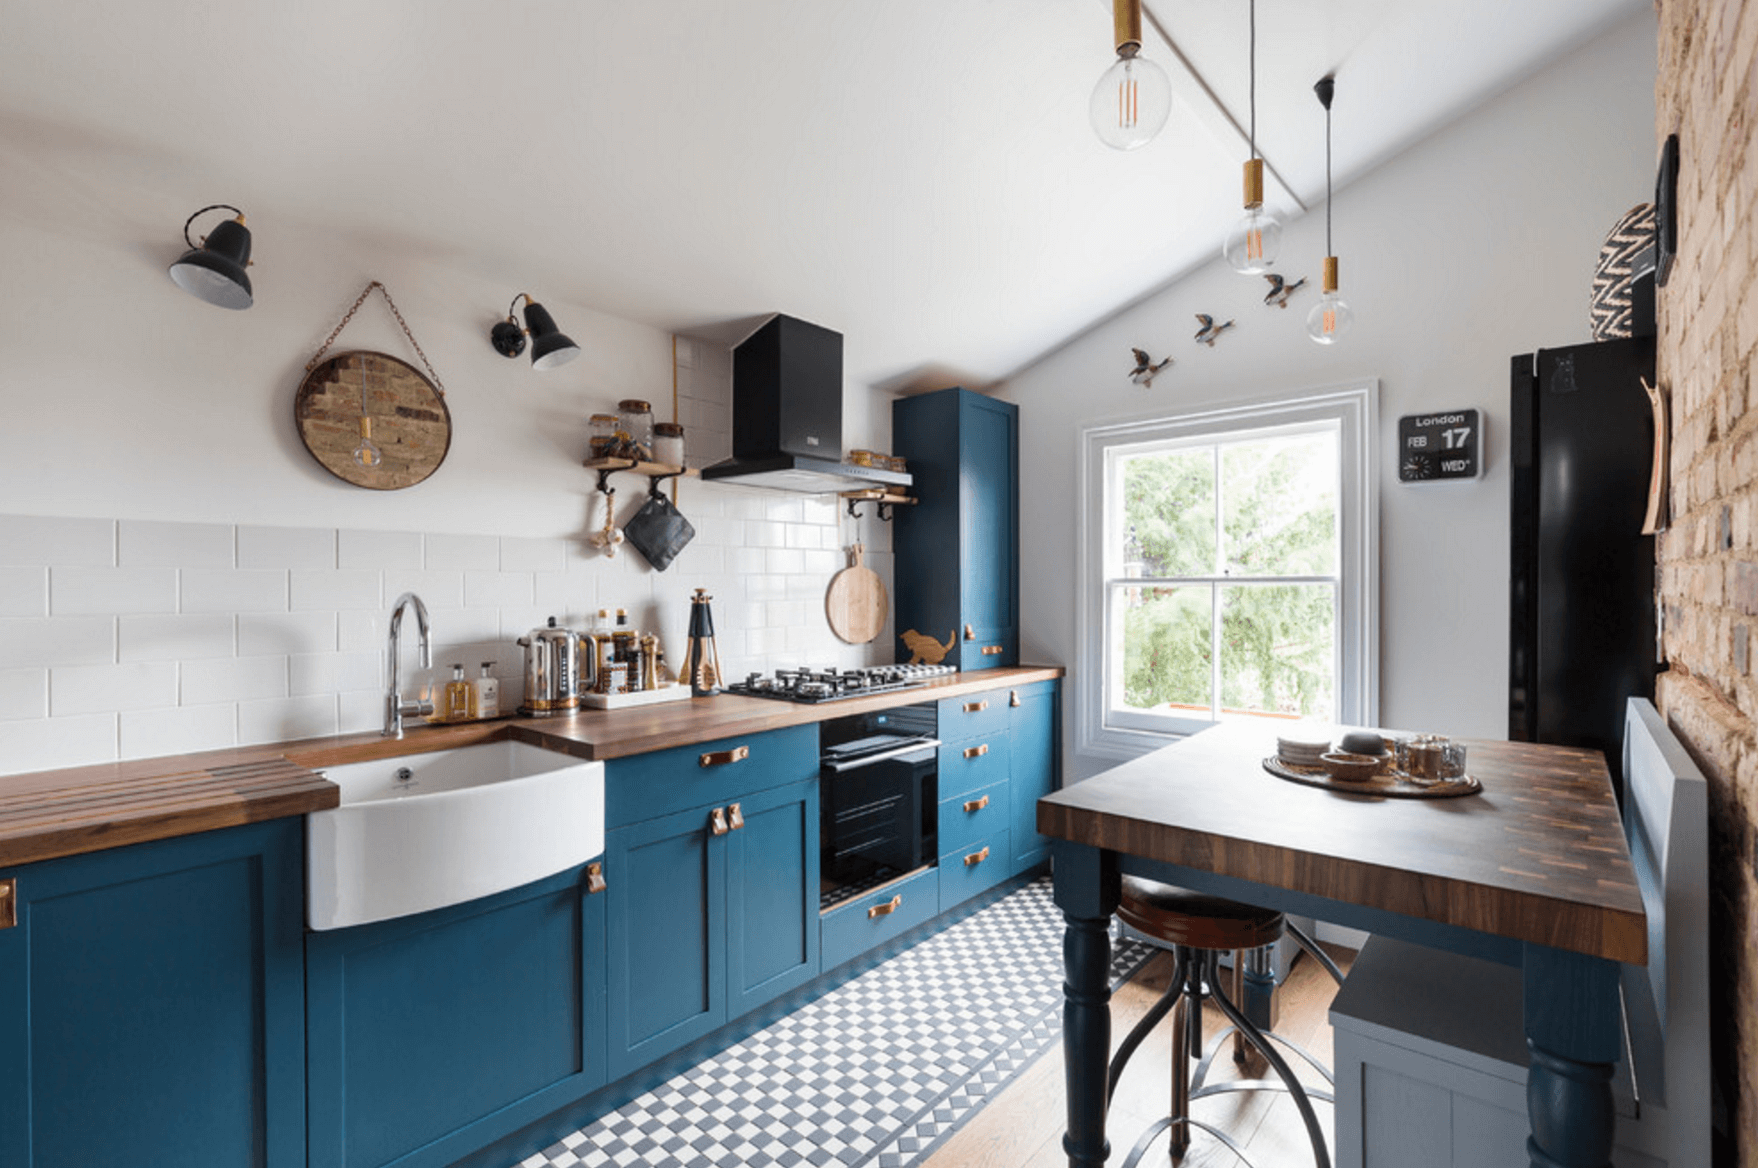 64 Stunningly Scandinavian Interior Designs Freshomecom - Interior-designed-kitchens